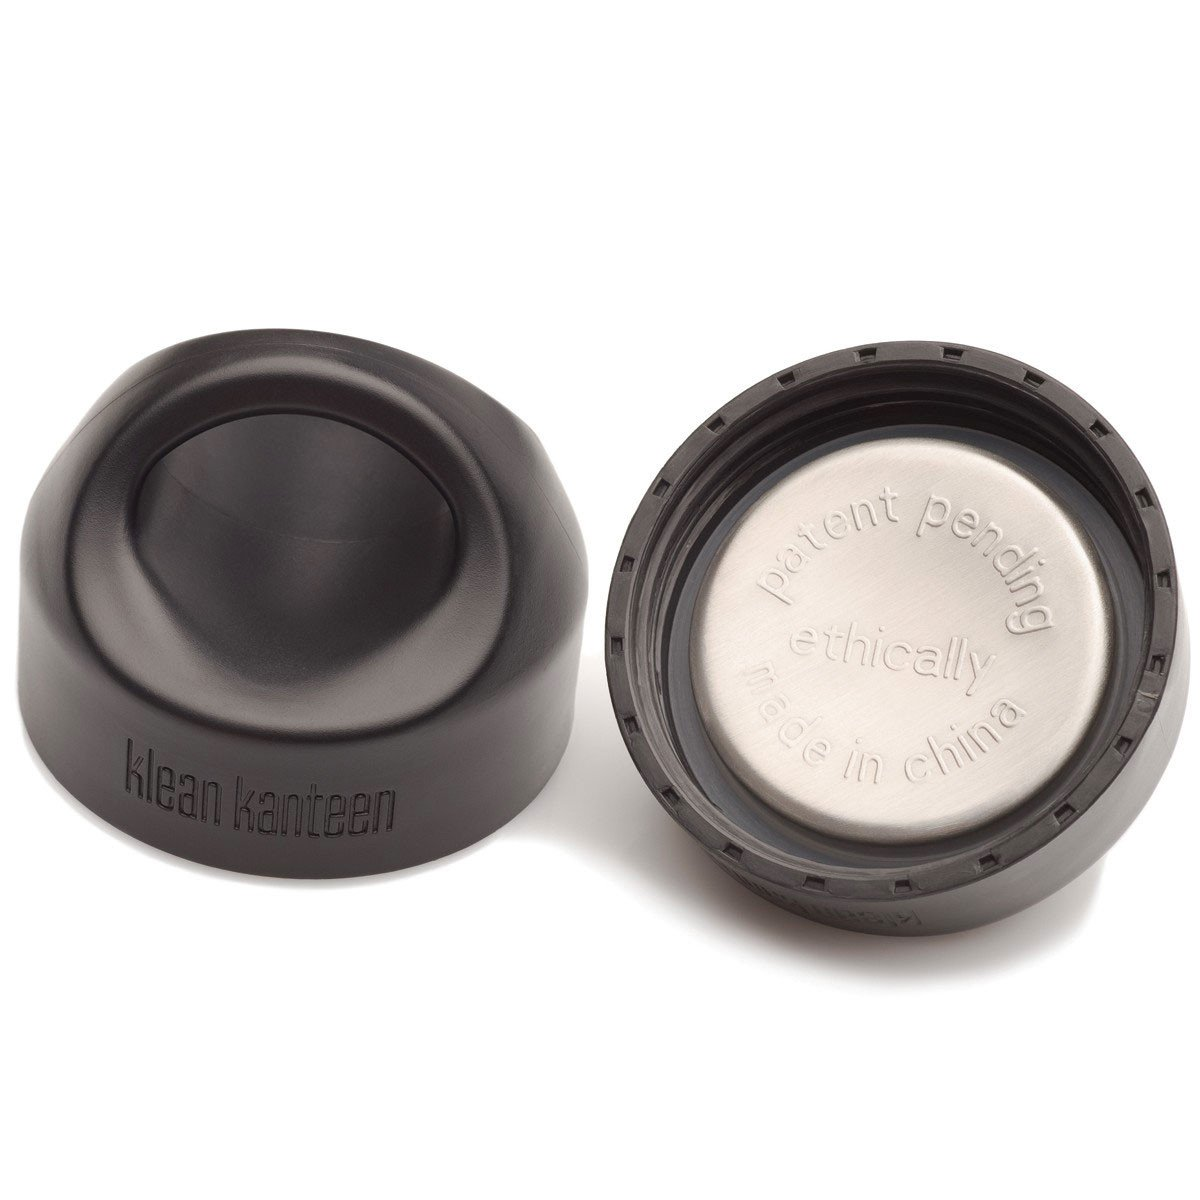 Klean Kanteen Replacement Bottle Caps  Wide Loop - Klean Kanteen - Little Earth Nest - 7